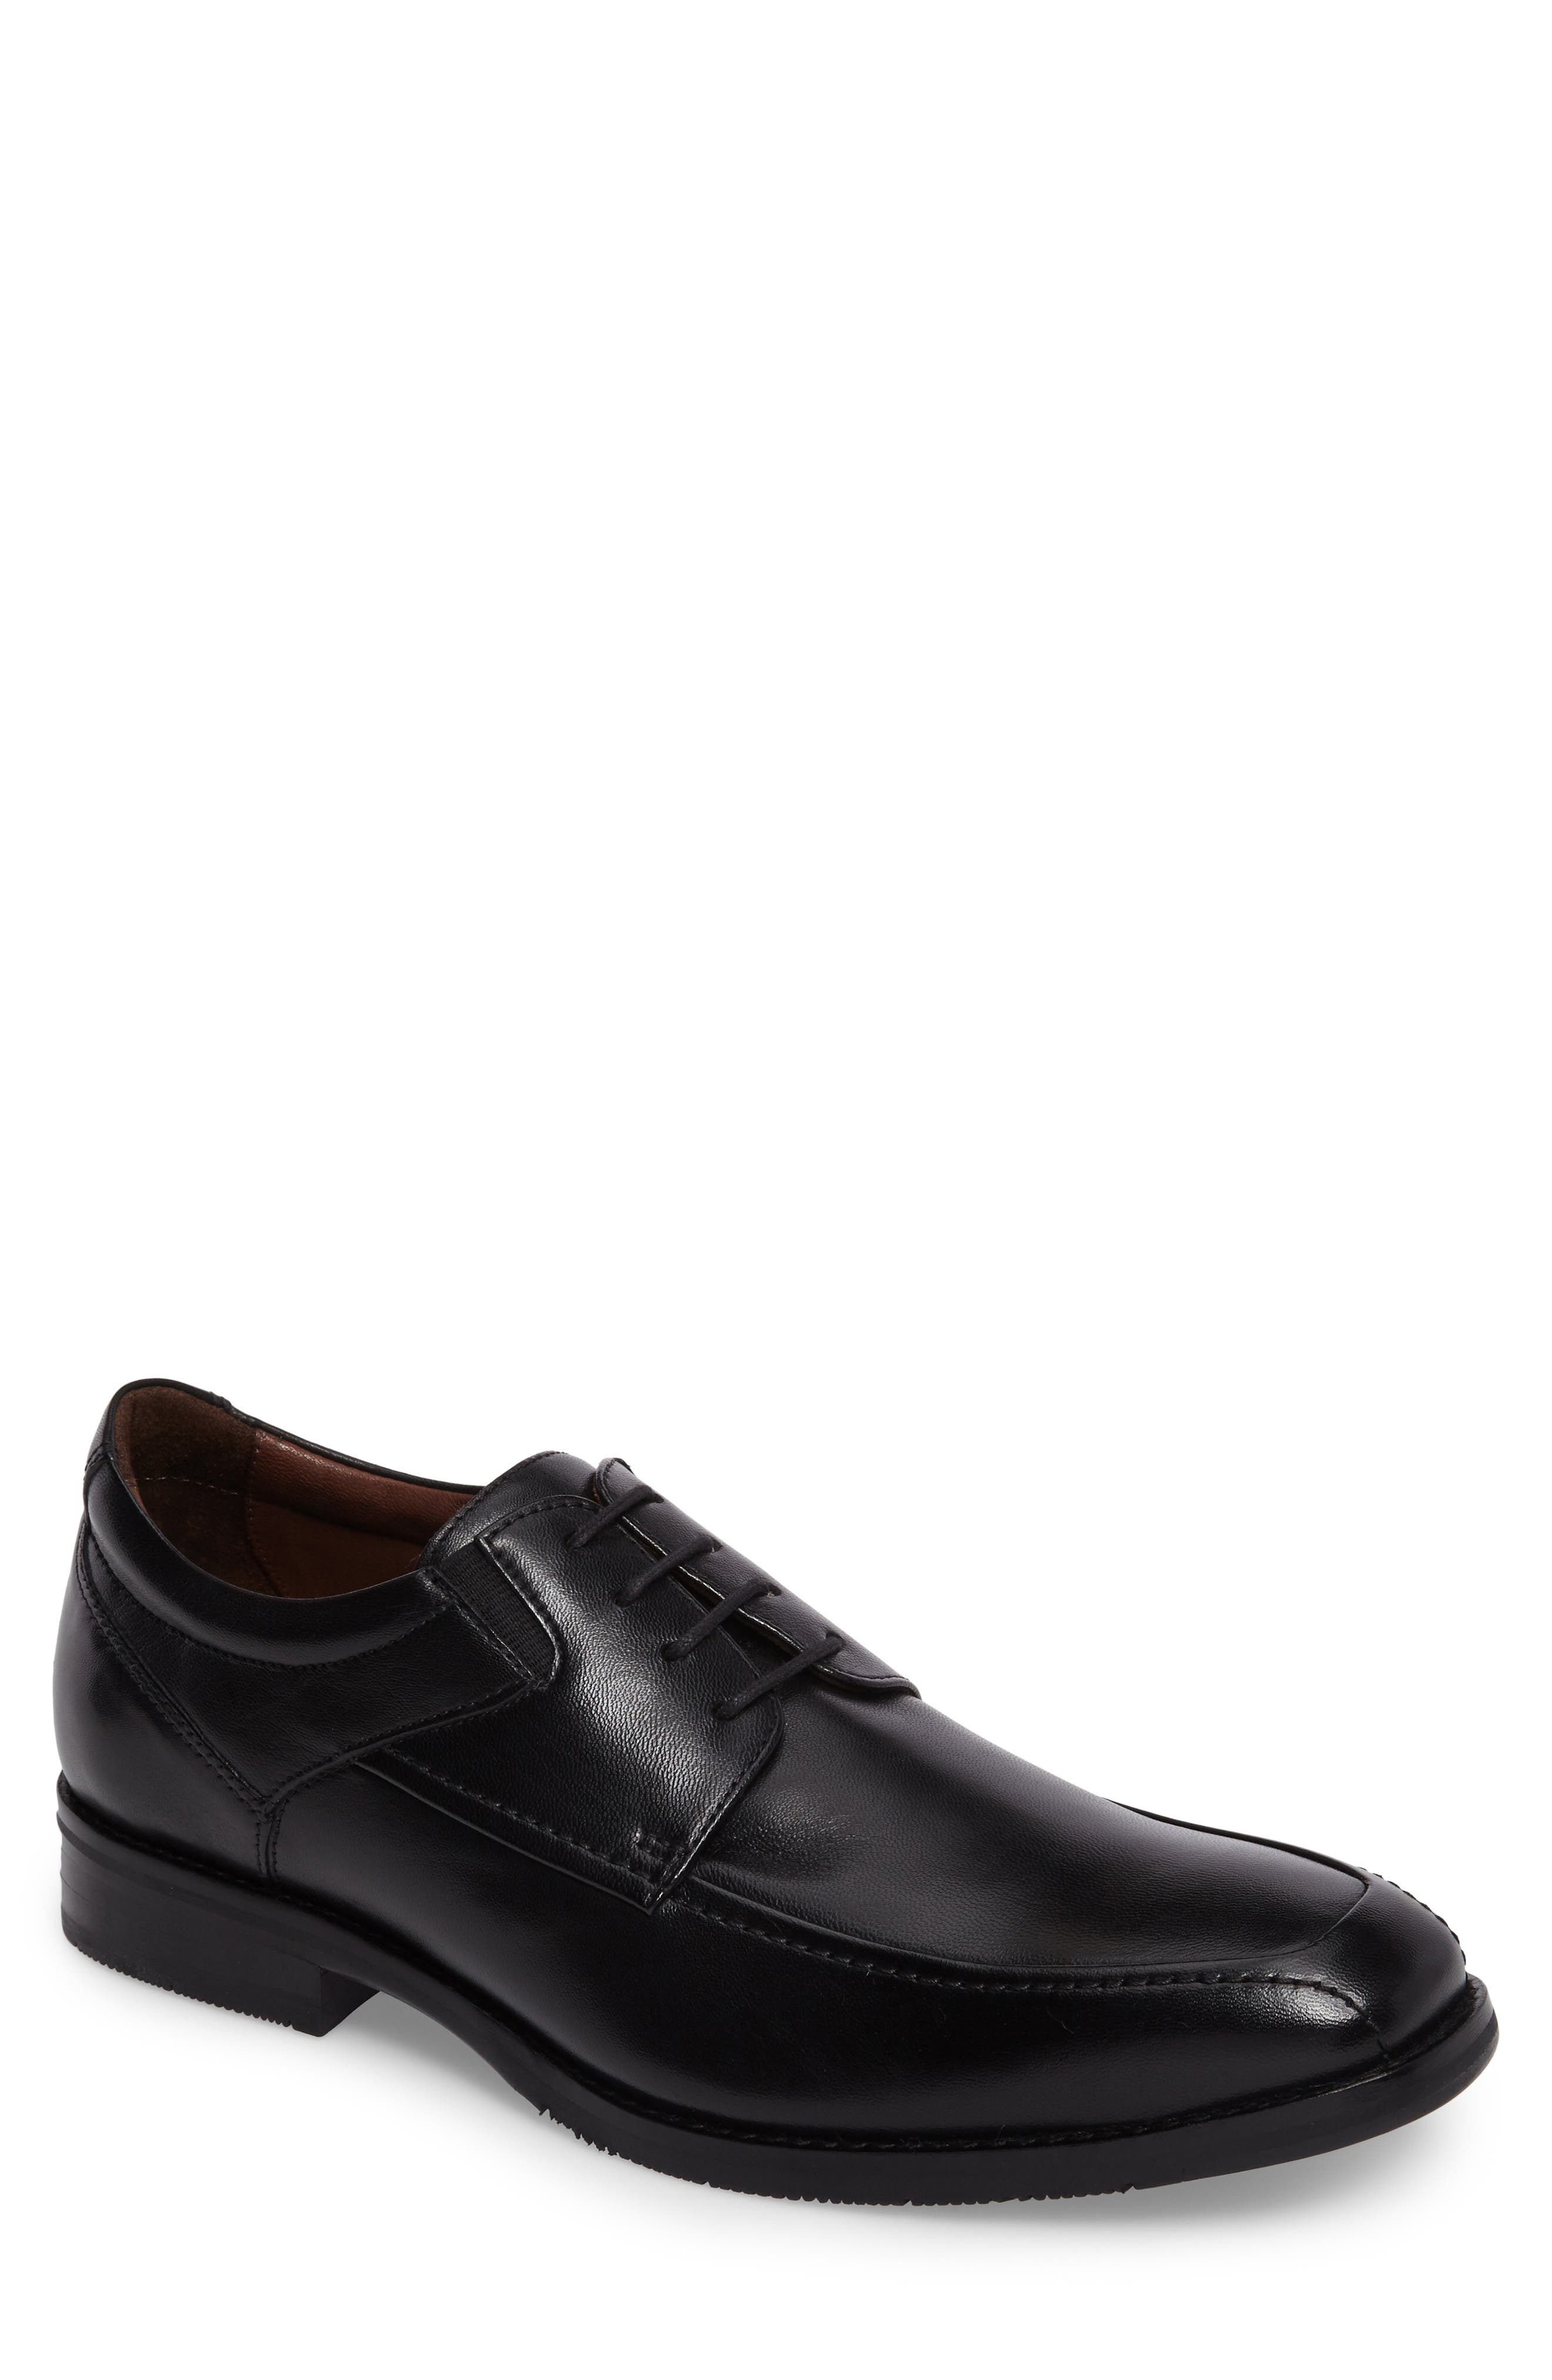 Johnston & Murphy Apron Toe Derby (Men)